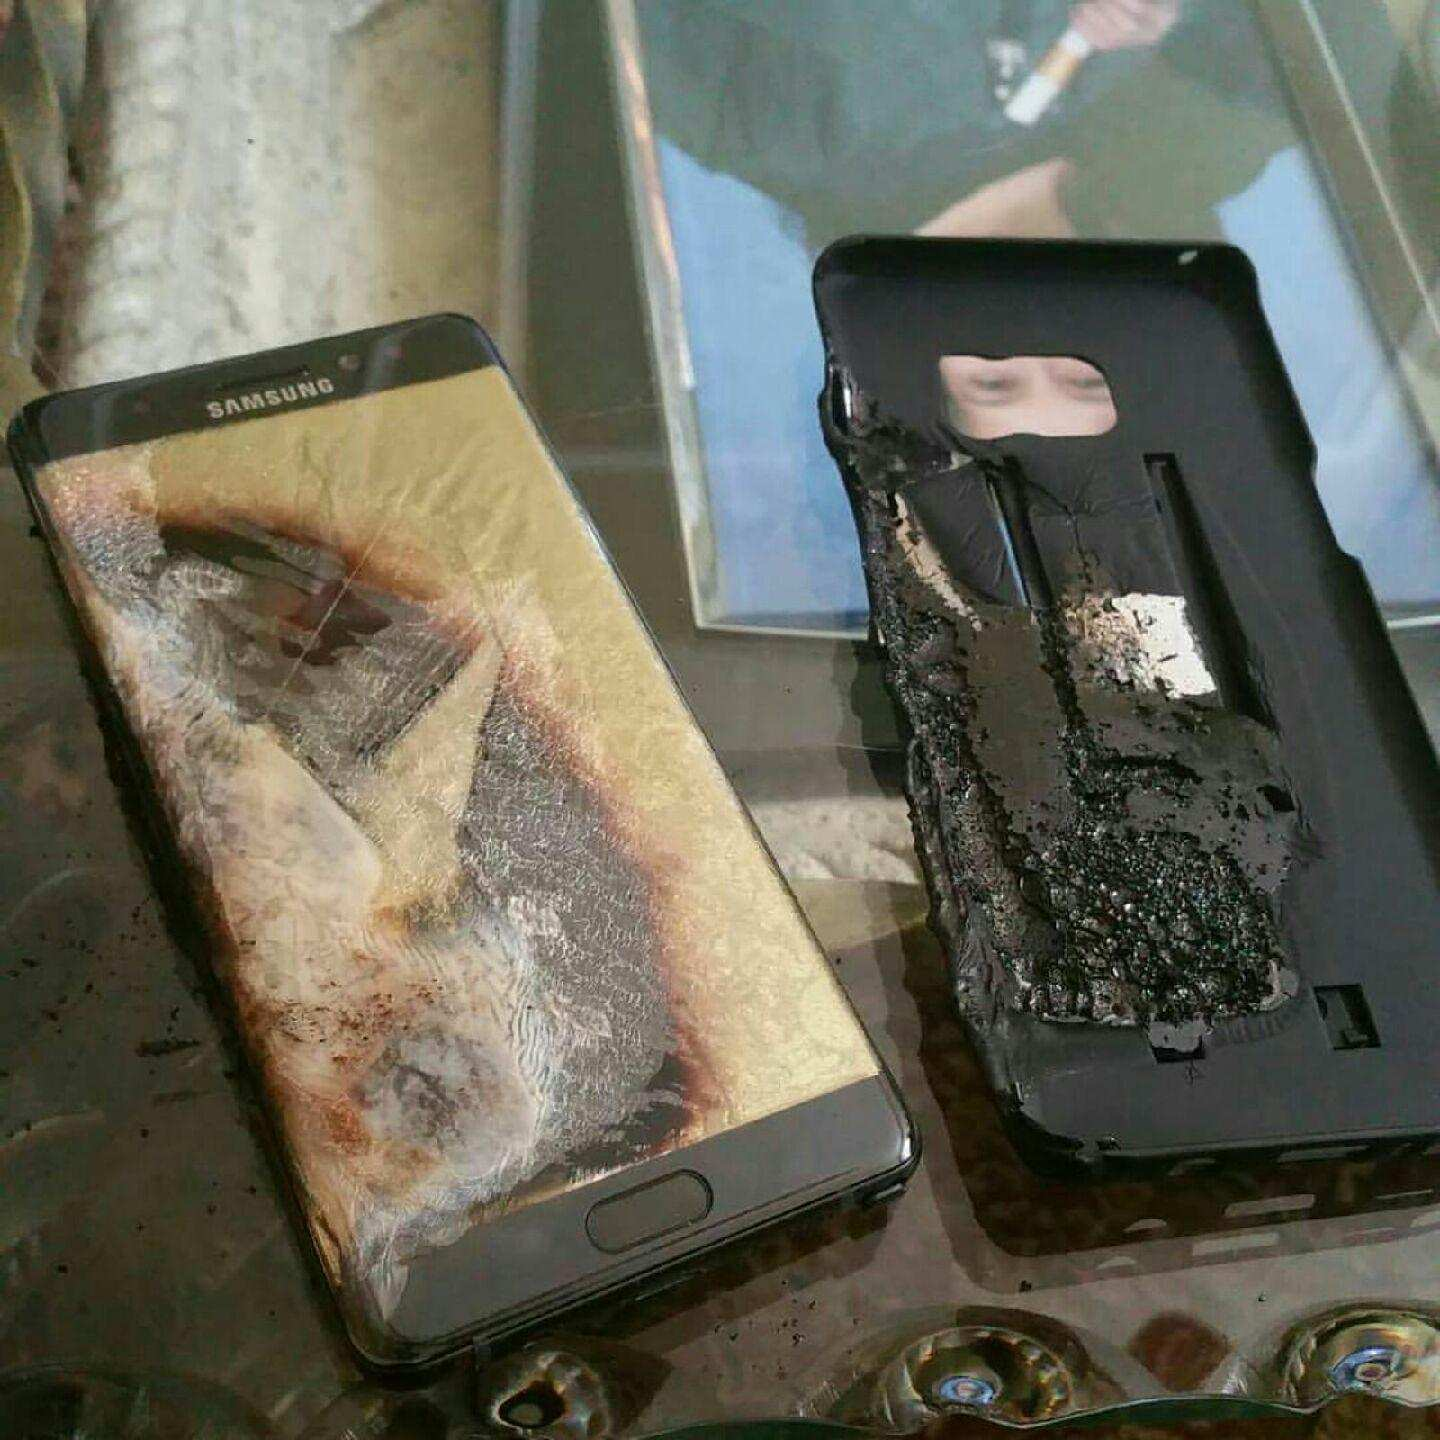 Galaxy Note 7 Fires